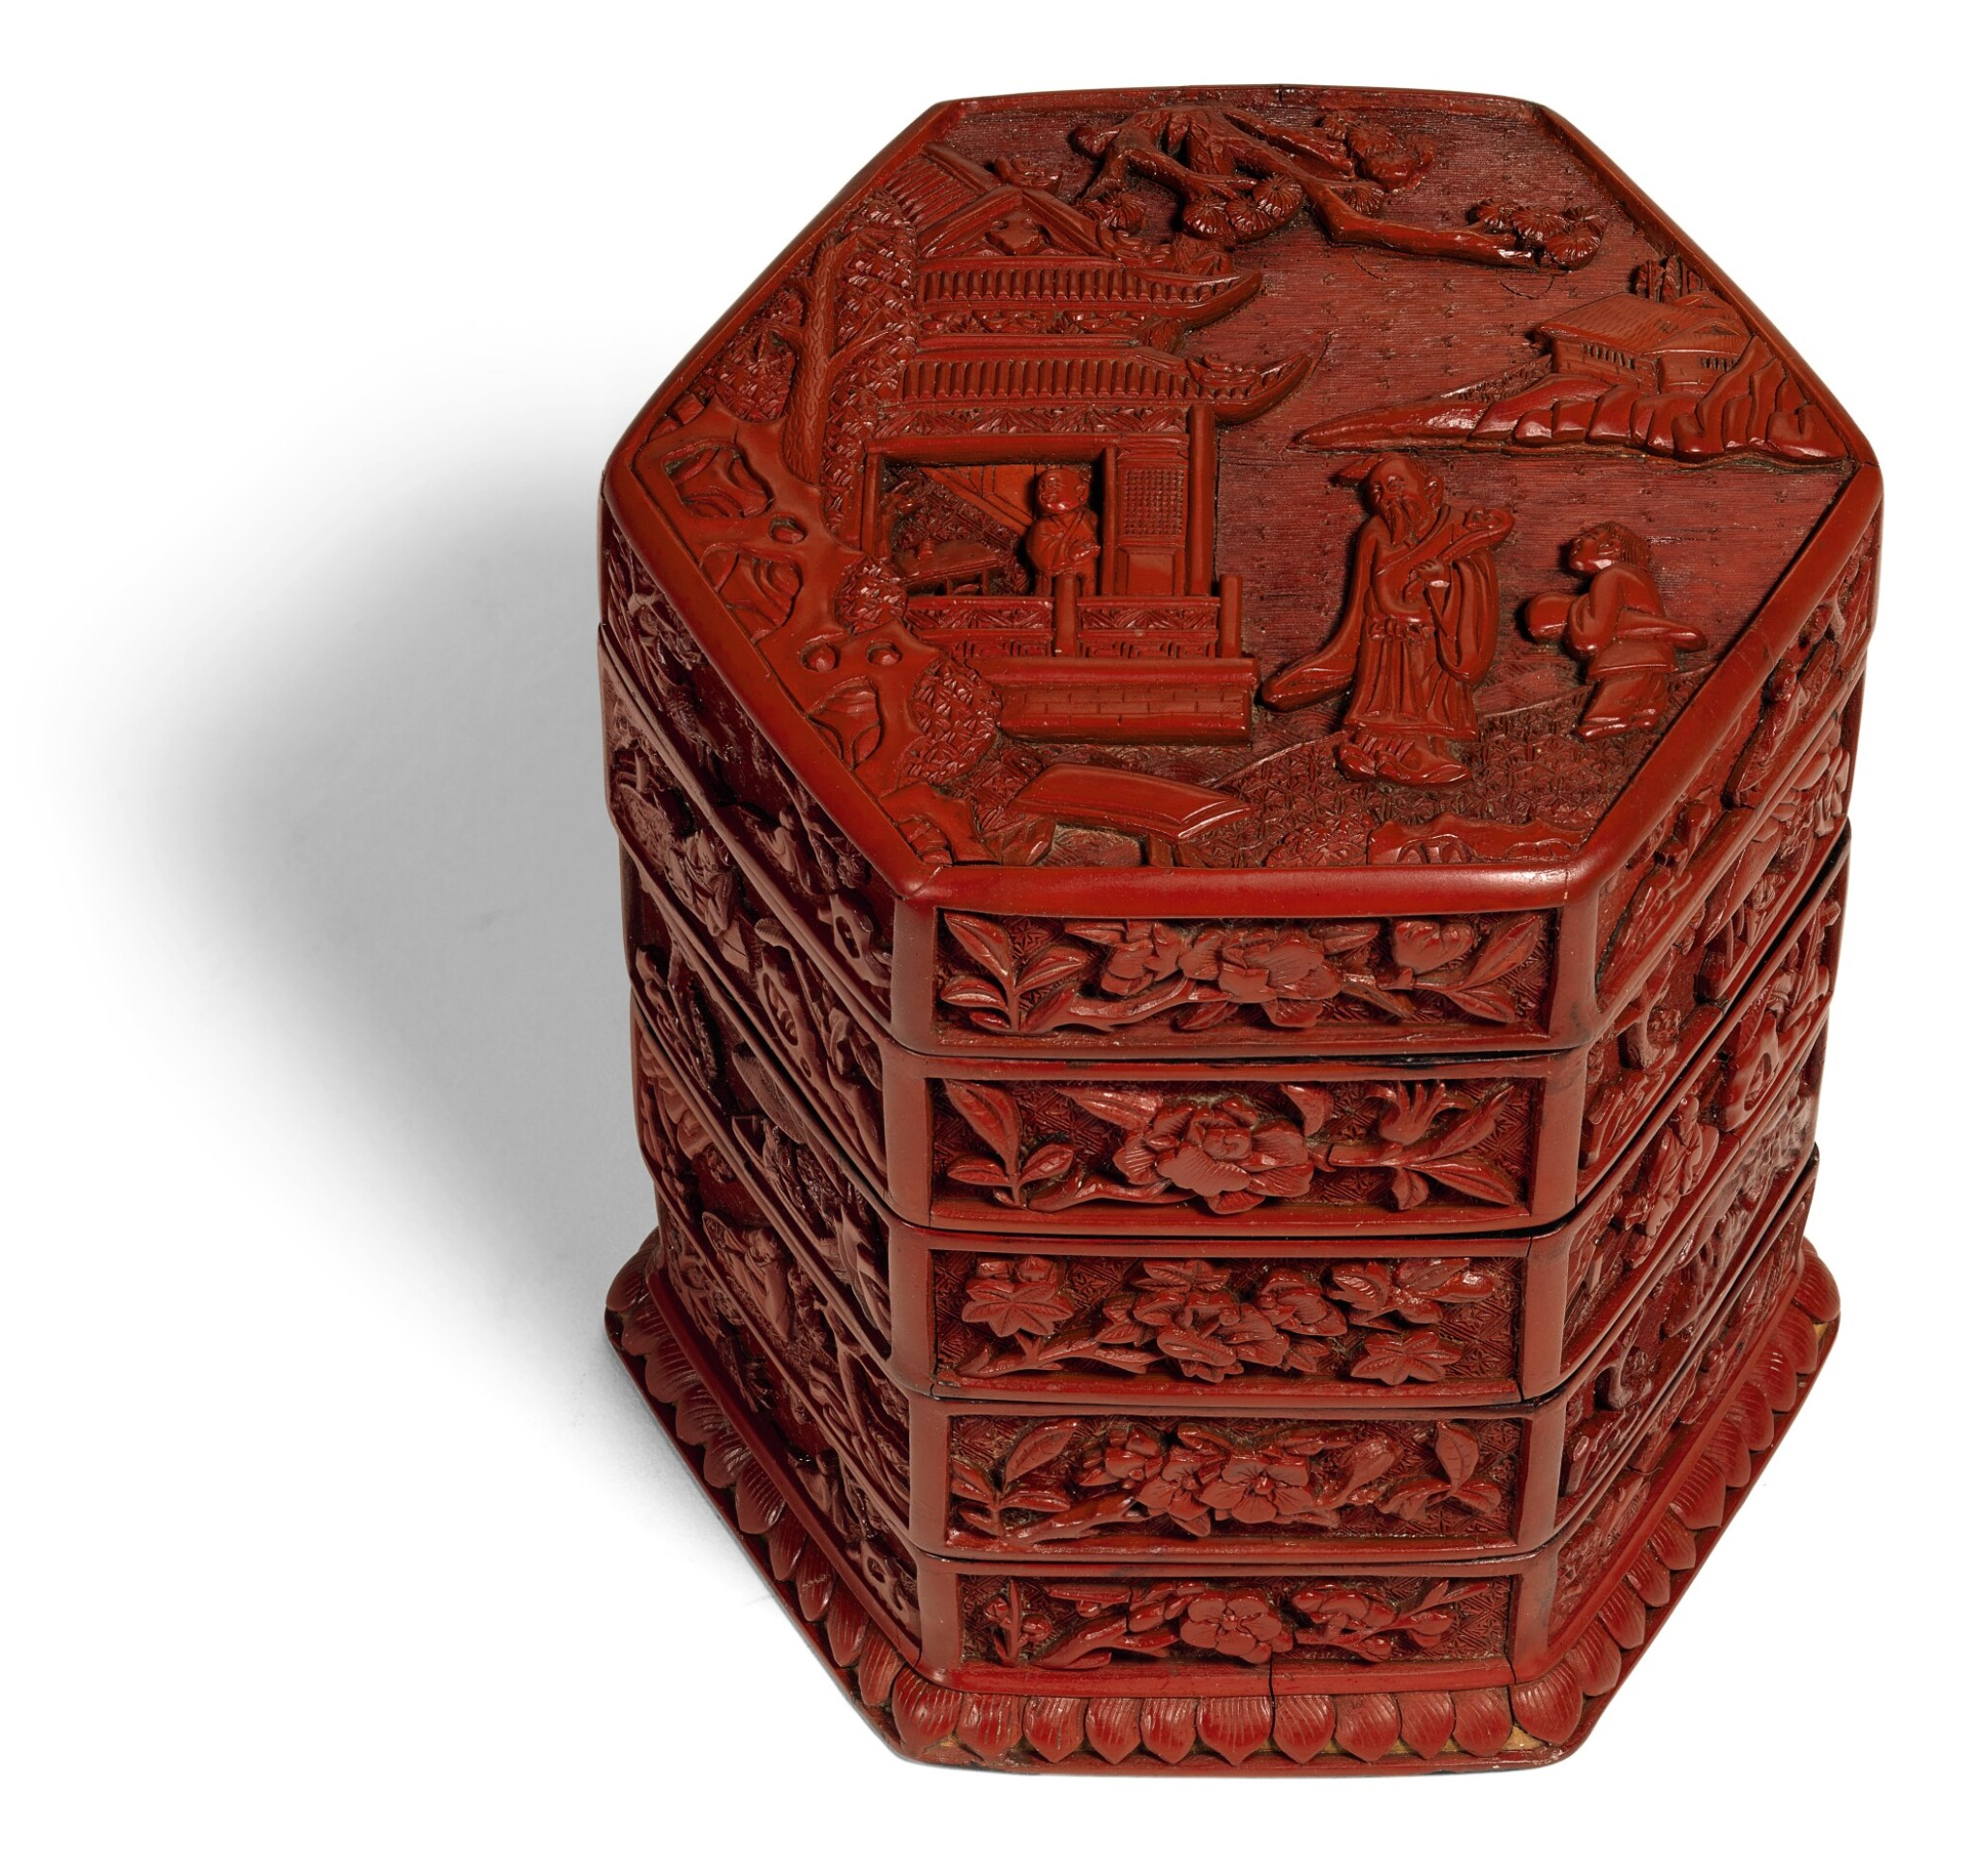 View full screen - View 1 of Lot 141. A CARVED CINNABAR LACQUER TIERED BOX AND COVER MING DYANSTY, 16TH CENTURY | 明十六世紀 剔紅庭院高士圖四層六方蓋盒.